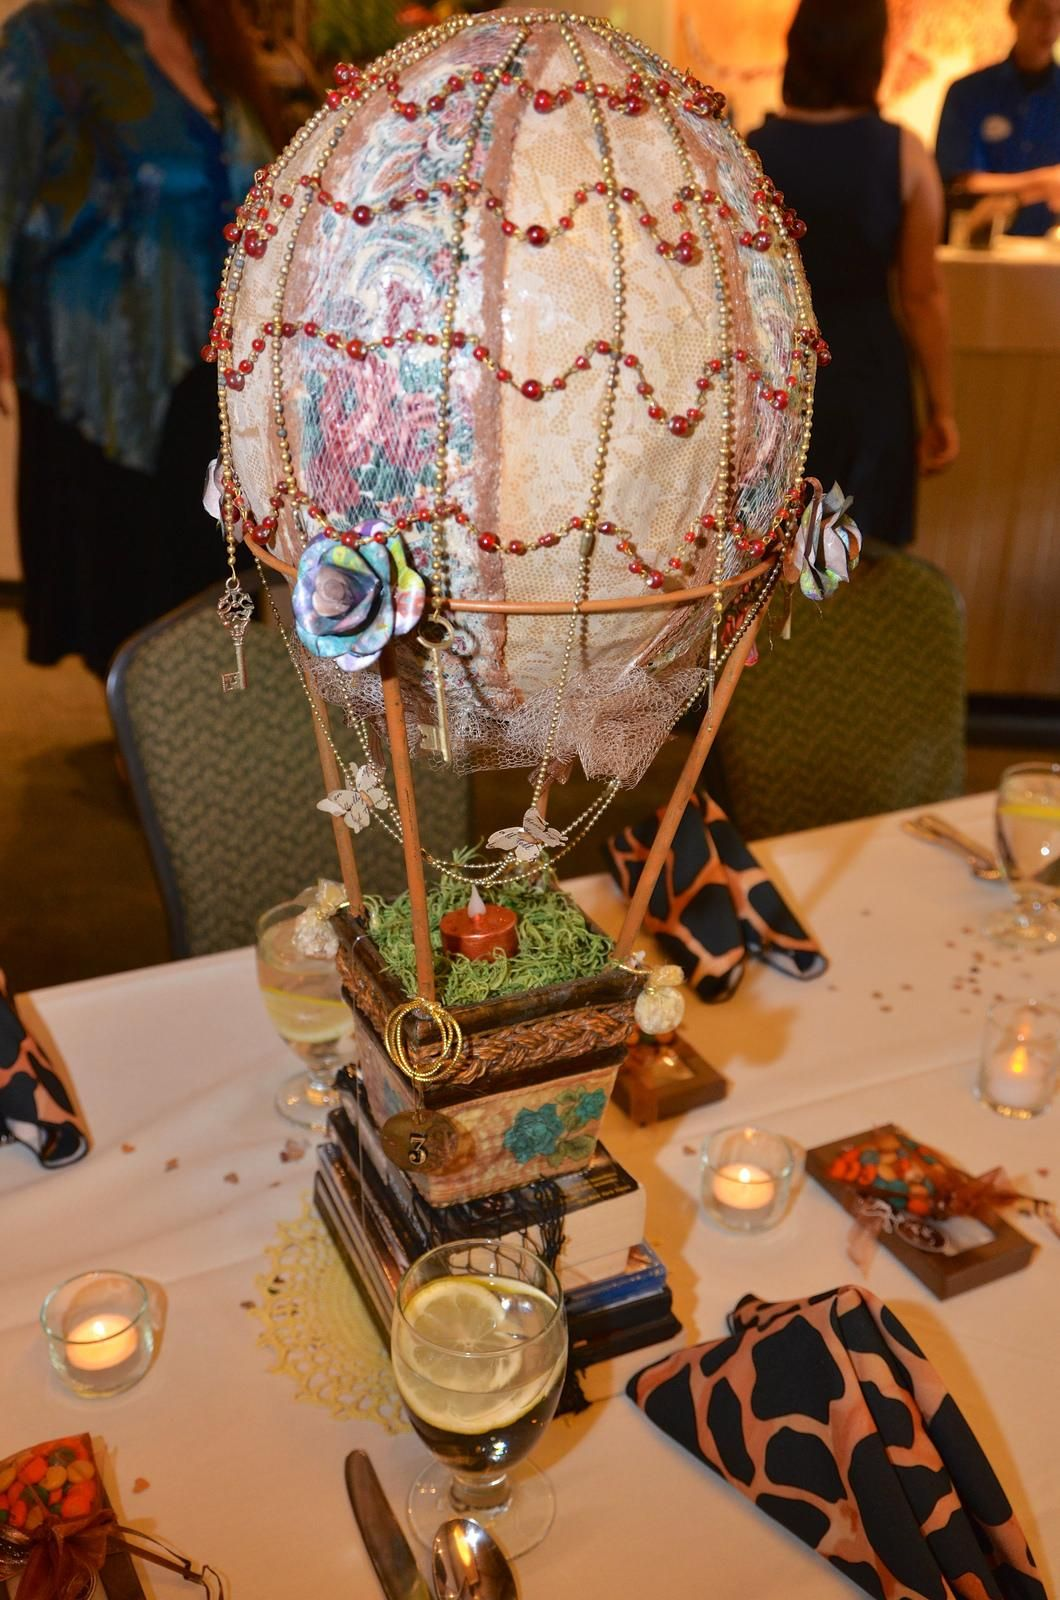 Each Centerpiece Was A Balloon Airship That Sat Atop Cargo Net Full Of Our Favorite Steampunk CircusGothic SteampunkSteampunk Wedding Themes